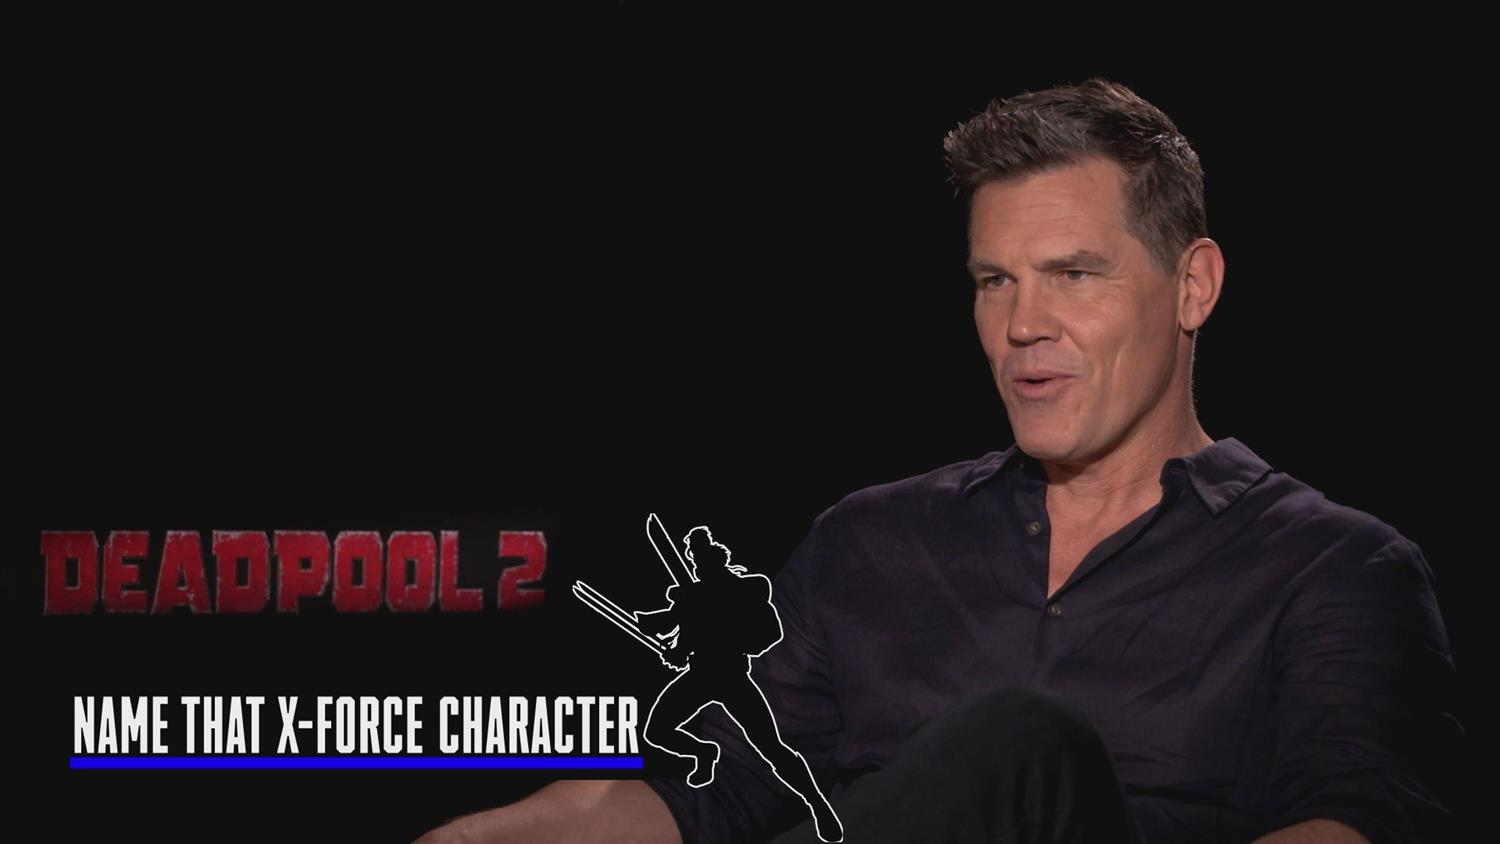 Deadpool 2 Cast Plays Guess The X-Force Member